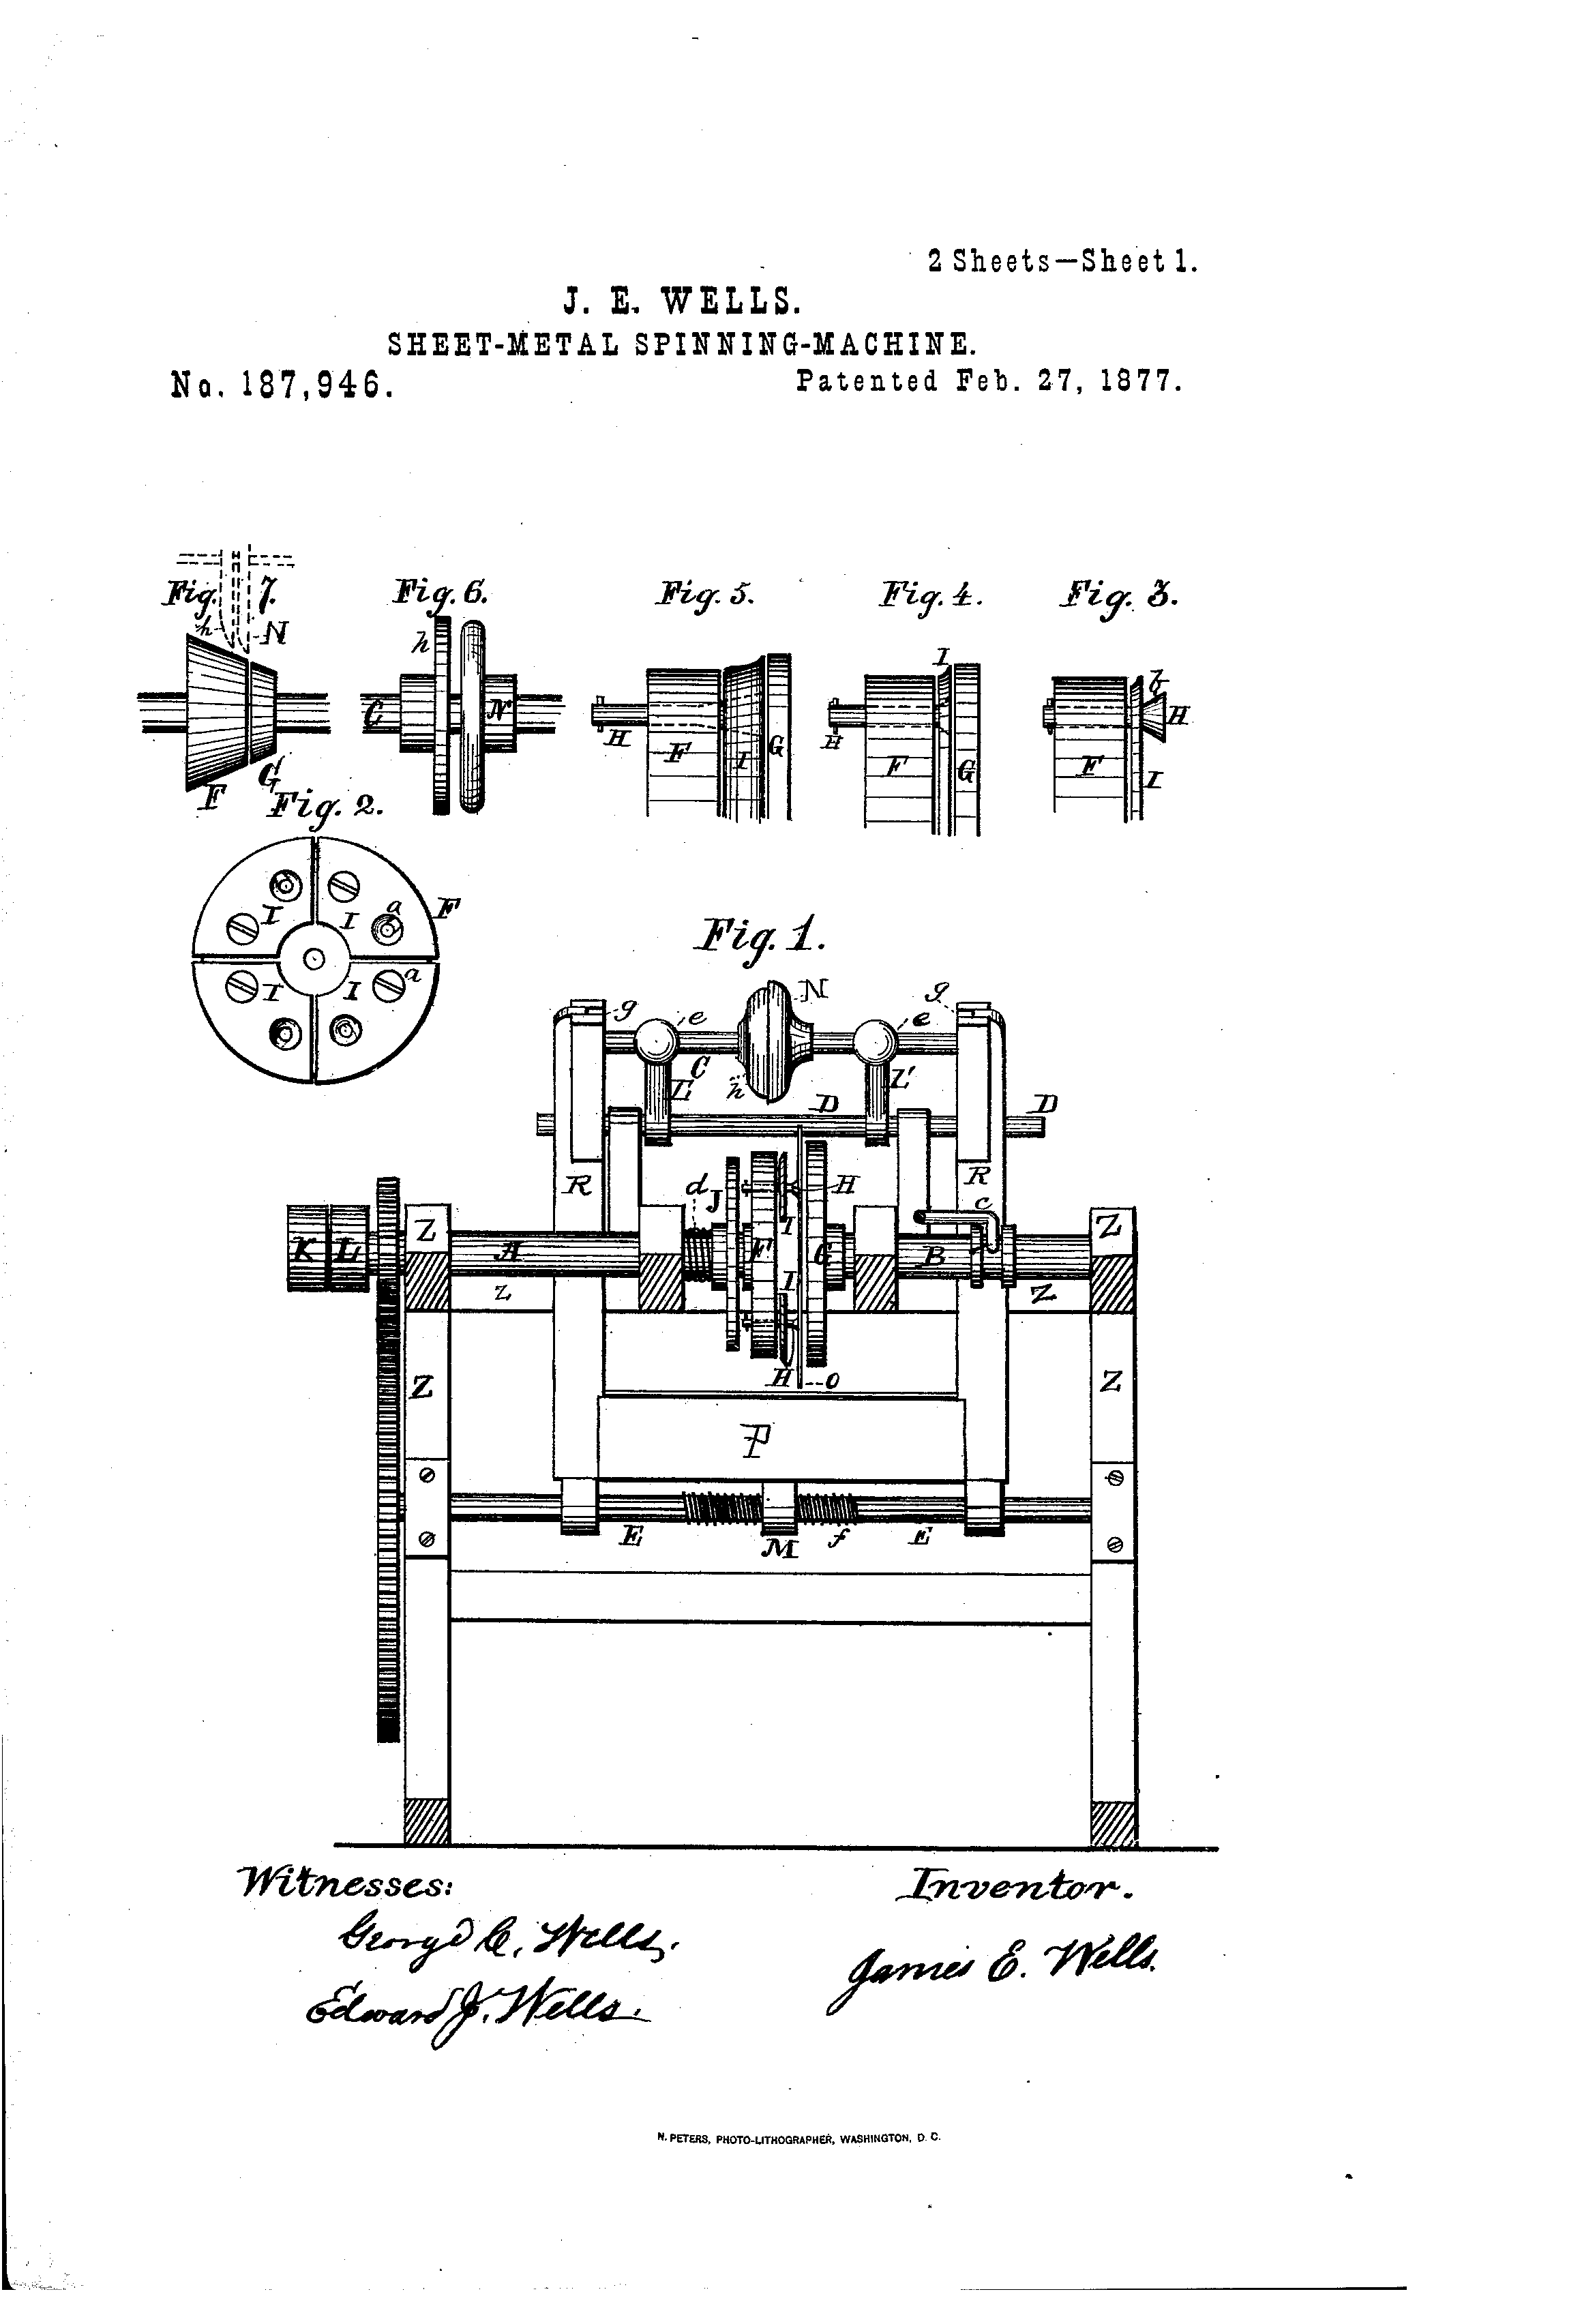 Brevet Us187946 Improvement In Sheet Metal Spinning Machines